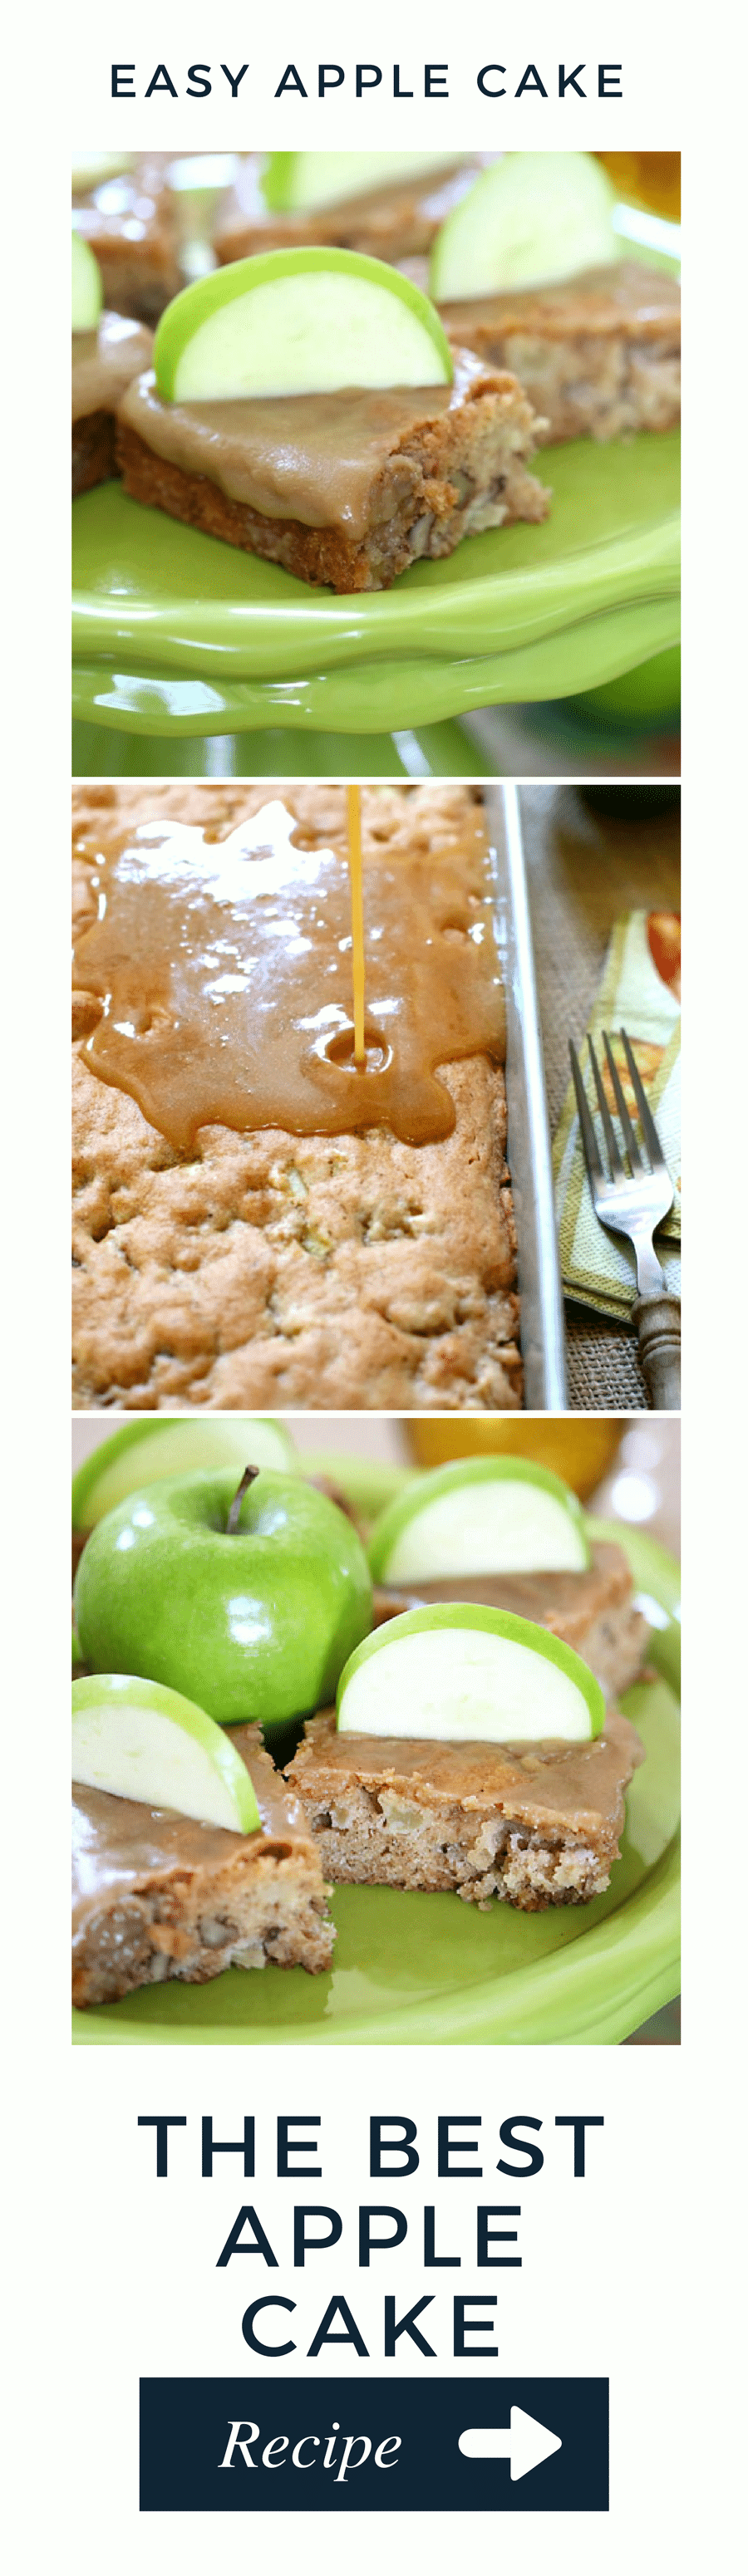 Easy delicious apple cake recipes